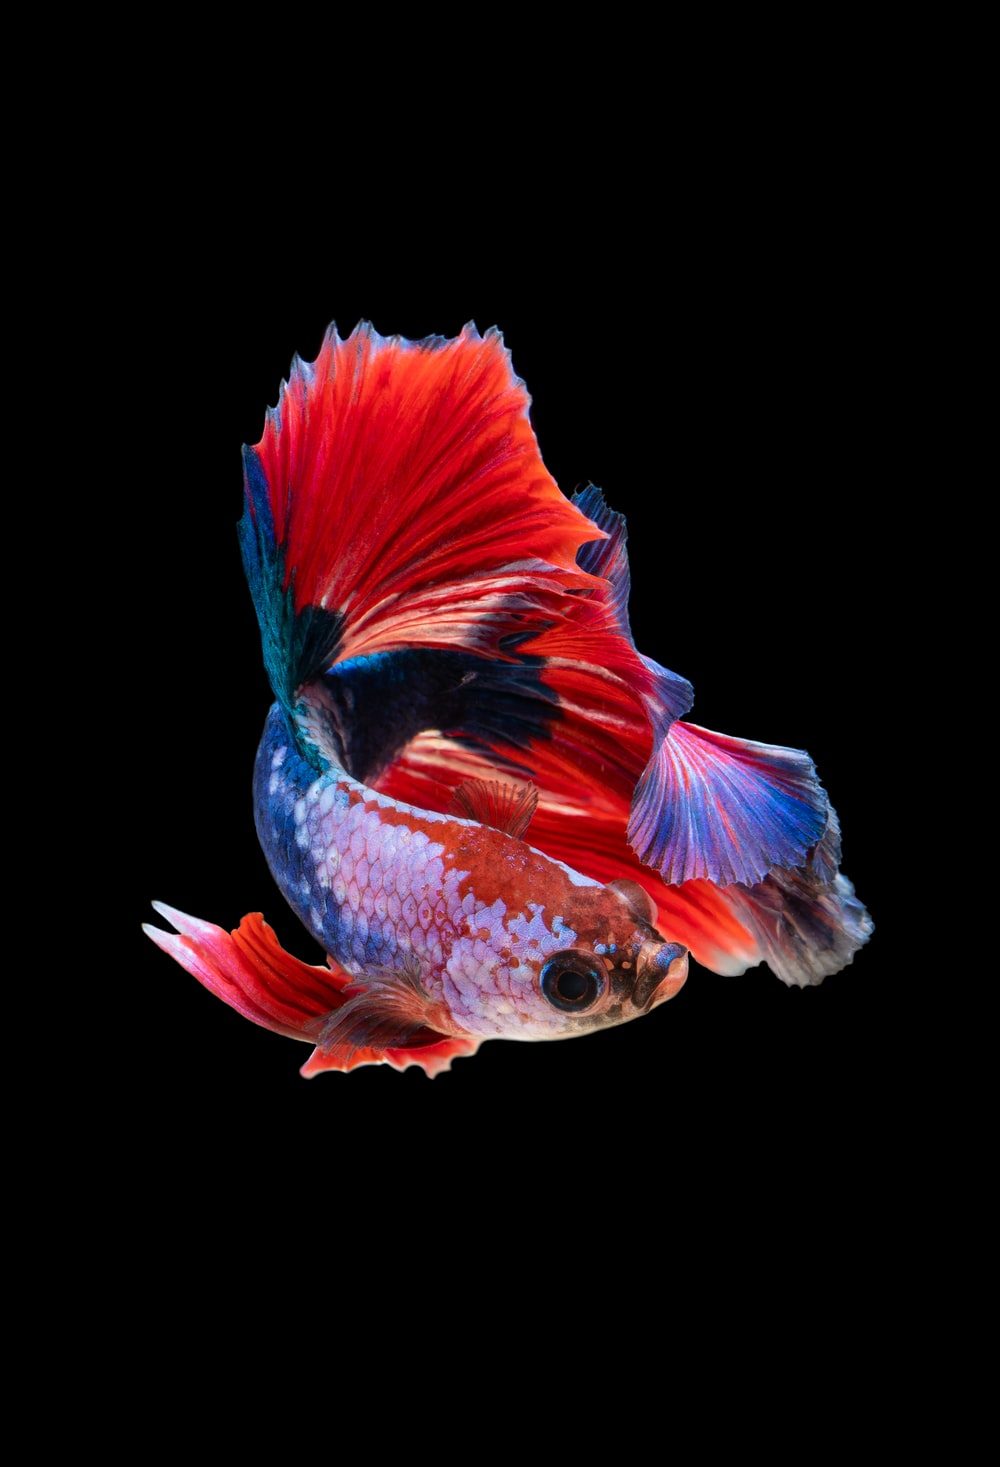 red and silver guppy fish